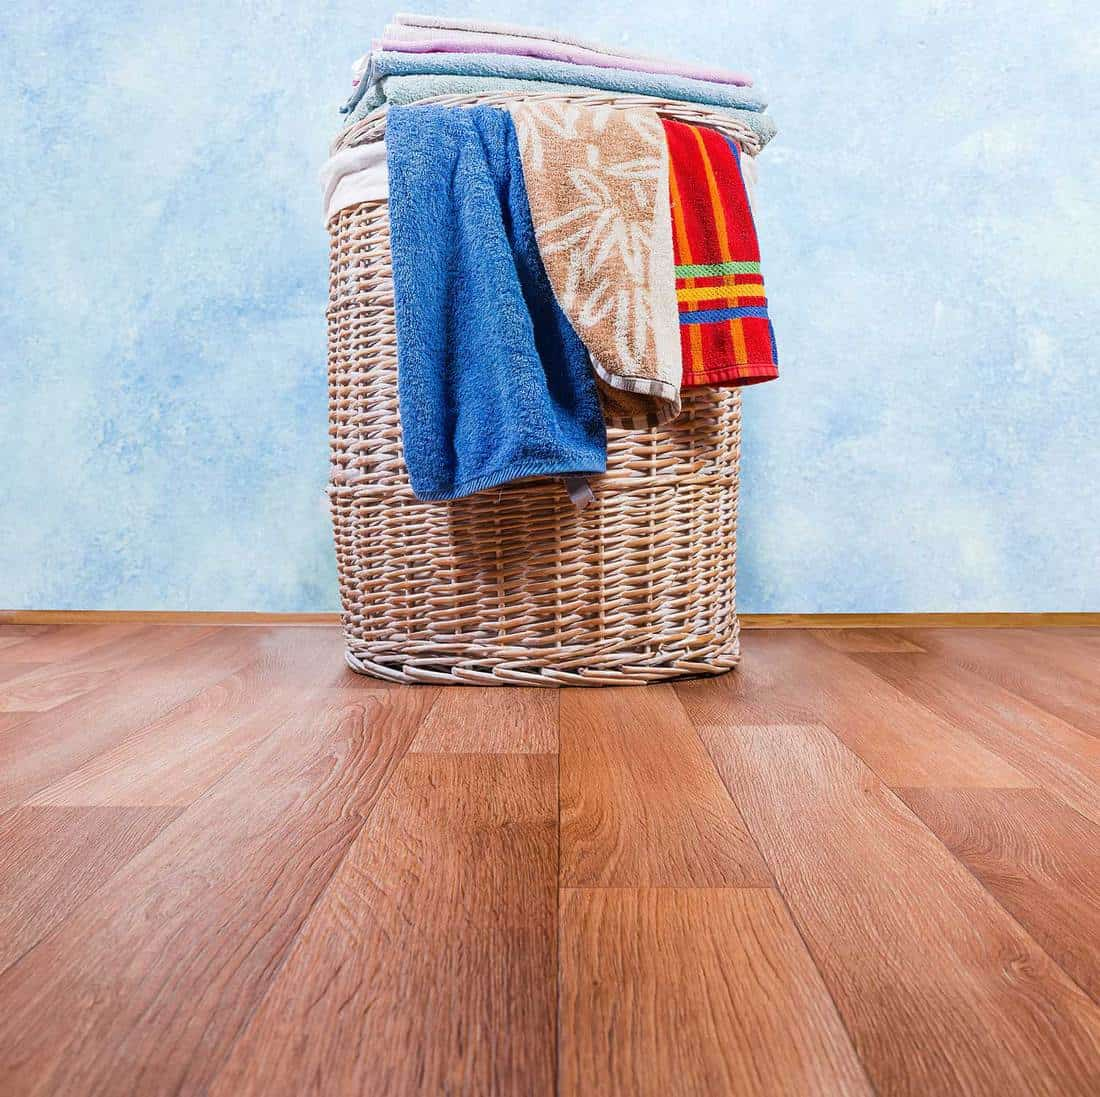 Wooden laundry hamper basket standing on the floor with towels and blankets hanging